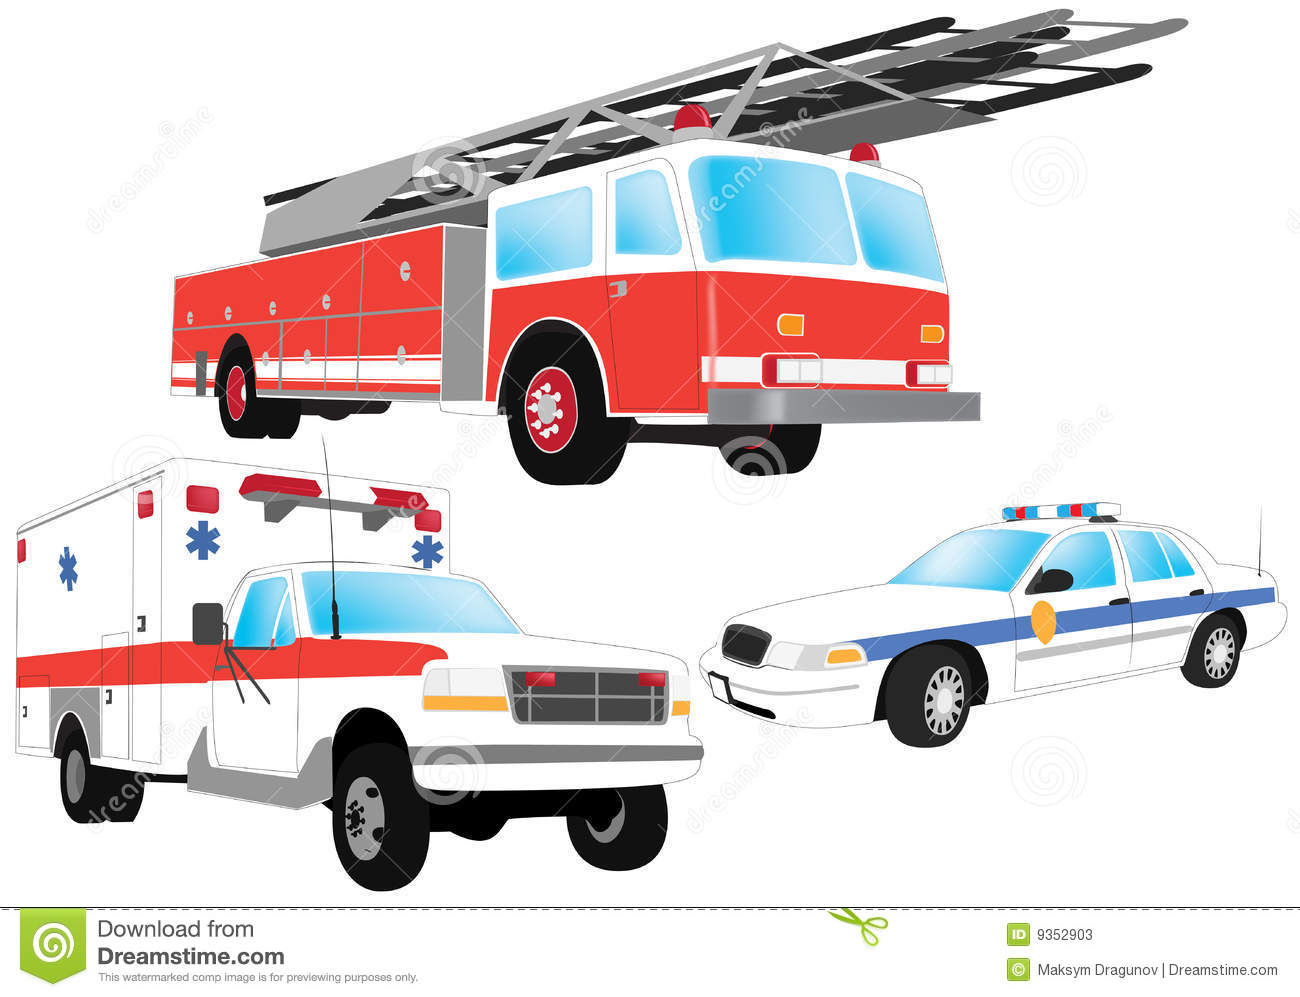 Emergency vehicles - firefighter, ambulance and police car.